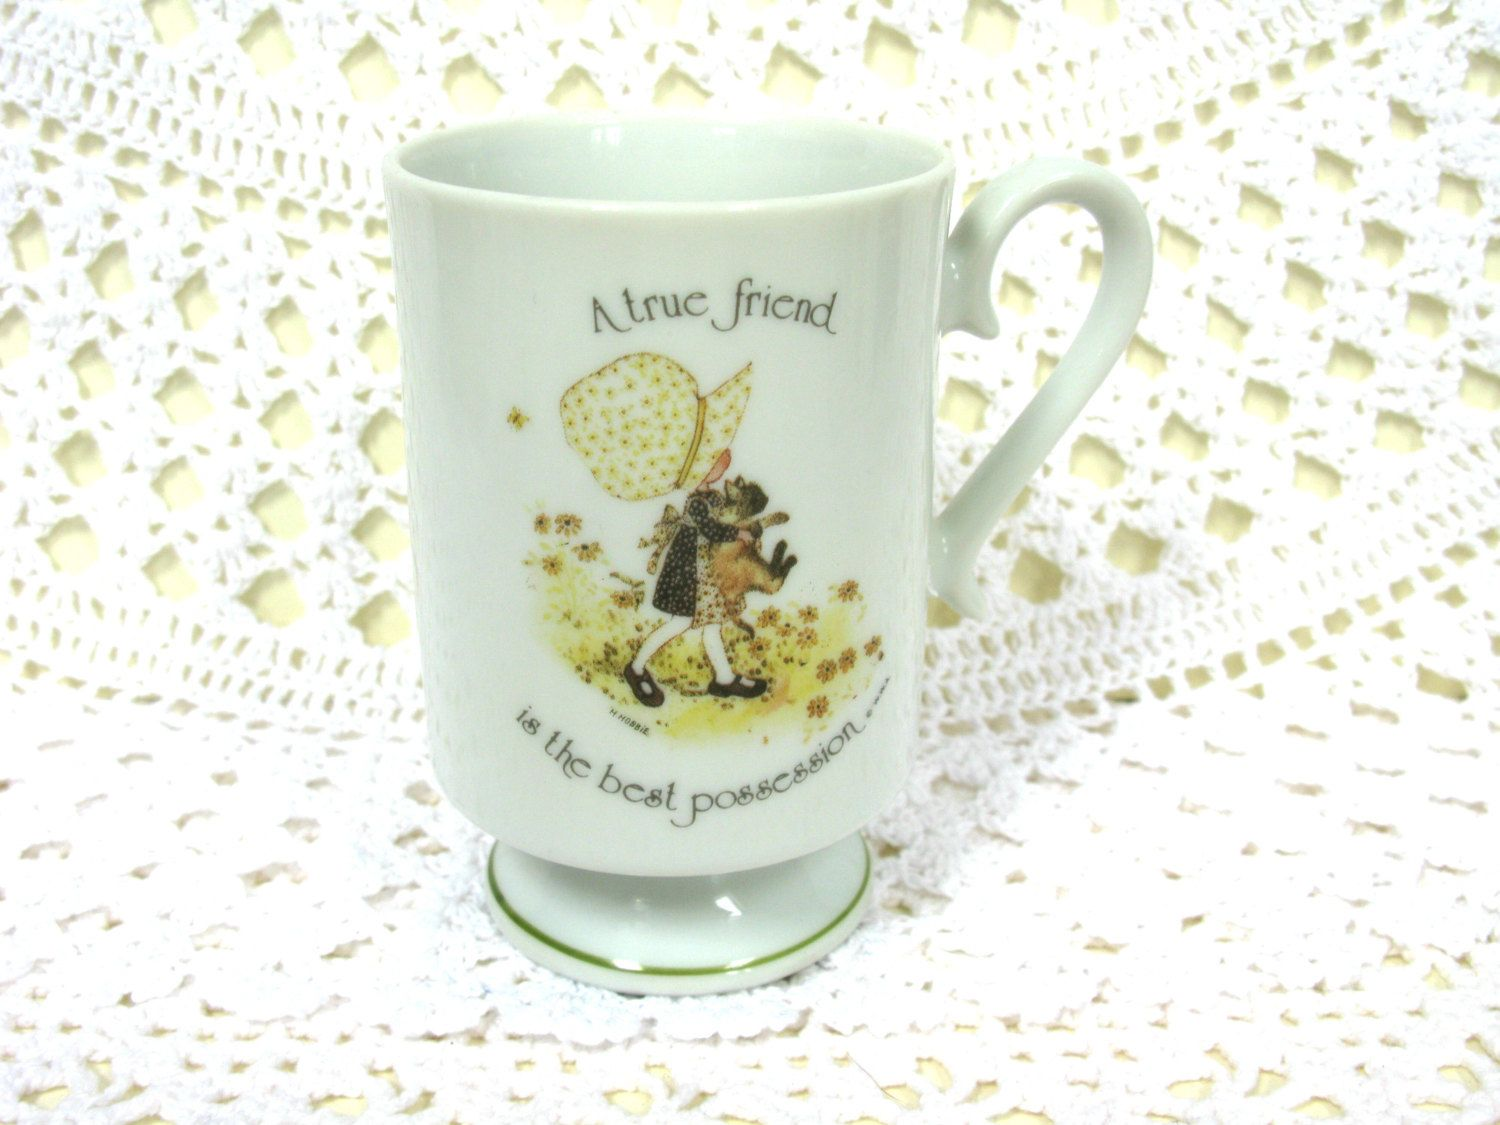 Holly Hobbie Mug - Holly Hobby Mug - Knickerbocker Toys - Celebration Arts - Holly Hobbie Collectable - Vintage Holly Hobbie - 1970s Toys by MissieMooVintageRoom on Etsy